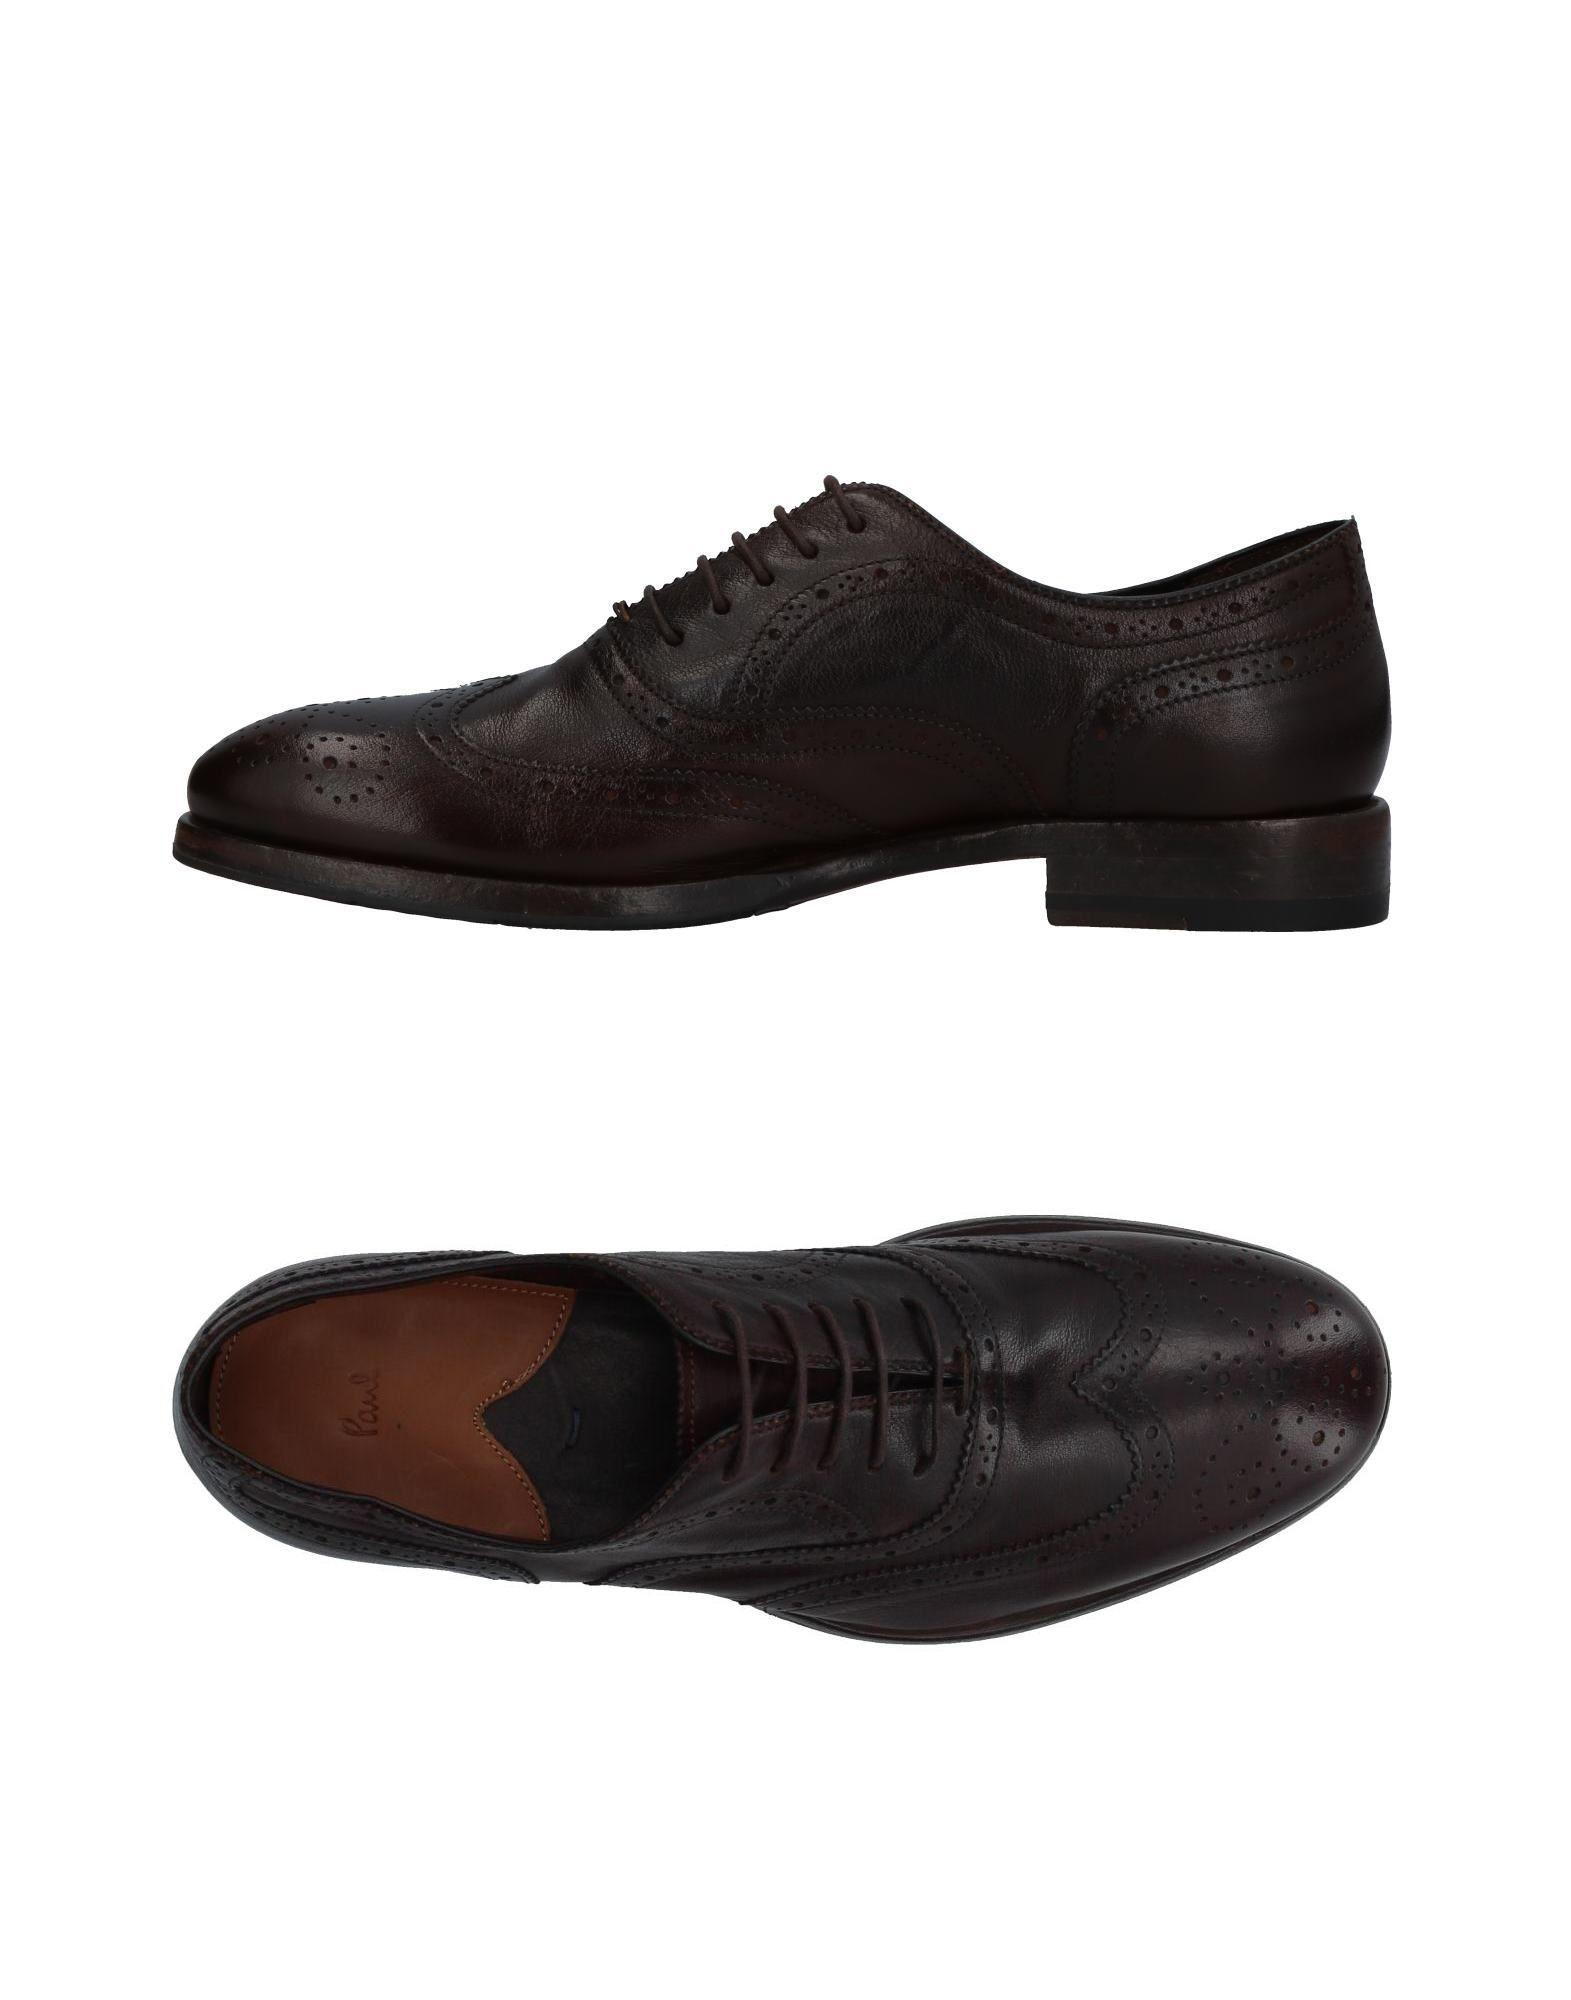 Paul Smith Lace-up Shoes In Dark Brown